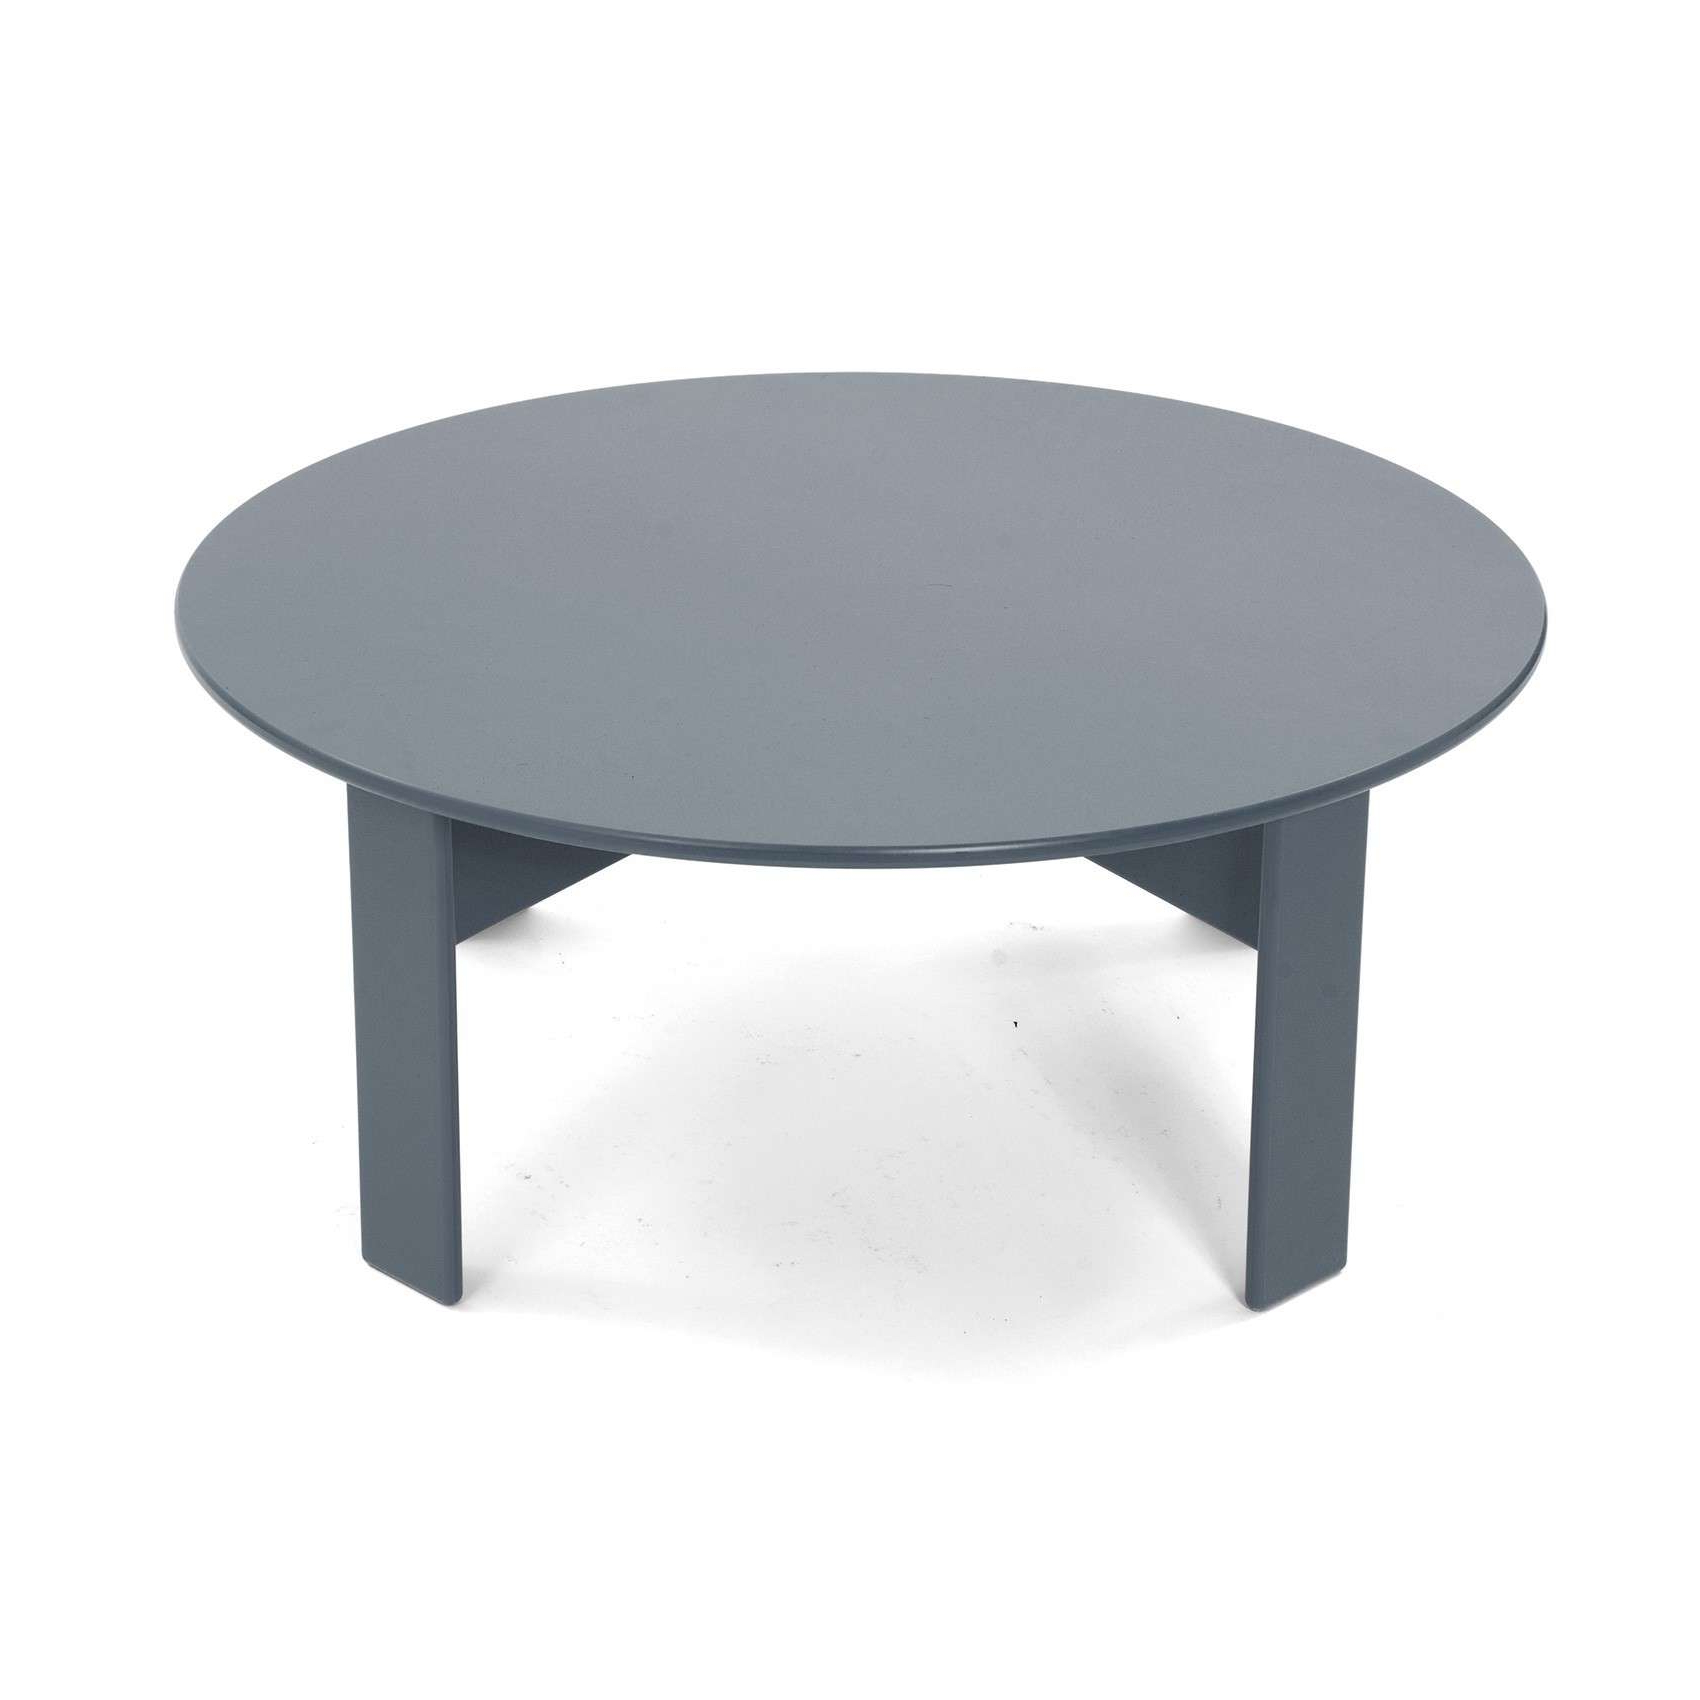 Cb2 Coffee Table – Coffee Drinker For Well Known Smart Round Marble Top Coffee Tables (View 17 of 20)